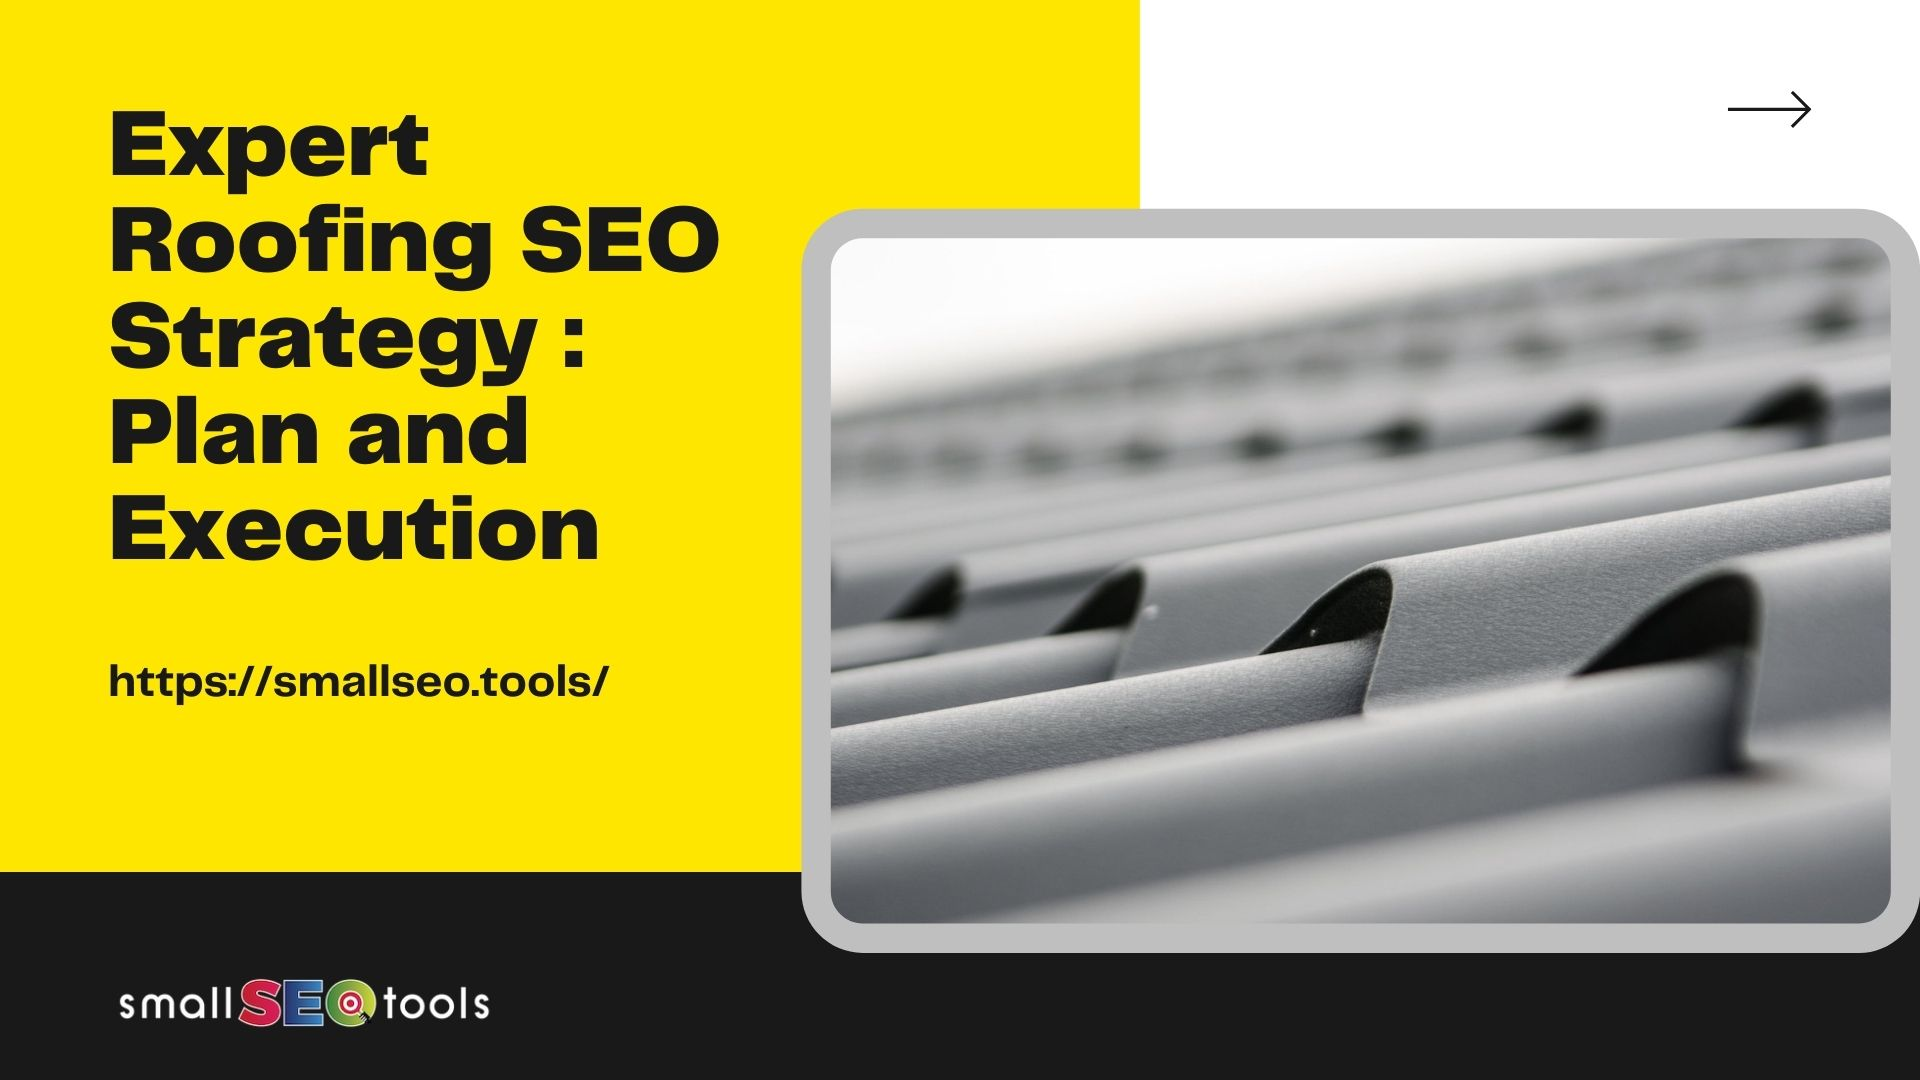 Roofing SEO Strategy